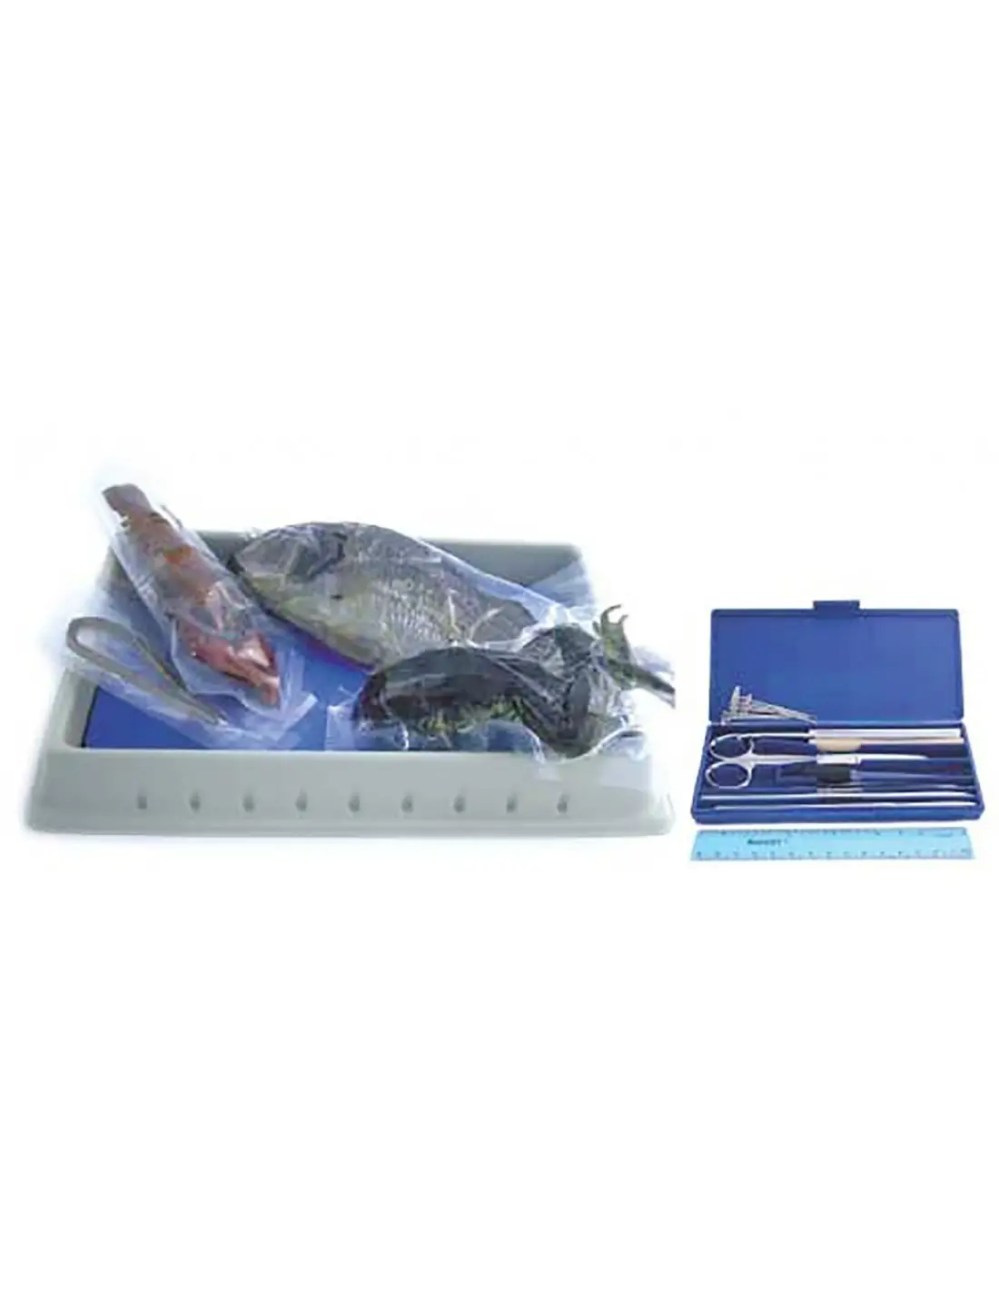 medium resolution of Biology Dissection Kit (with specimens)